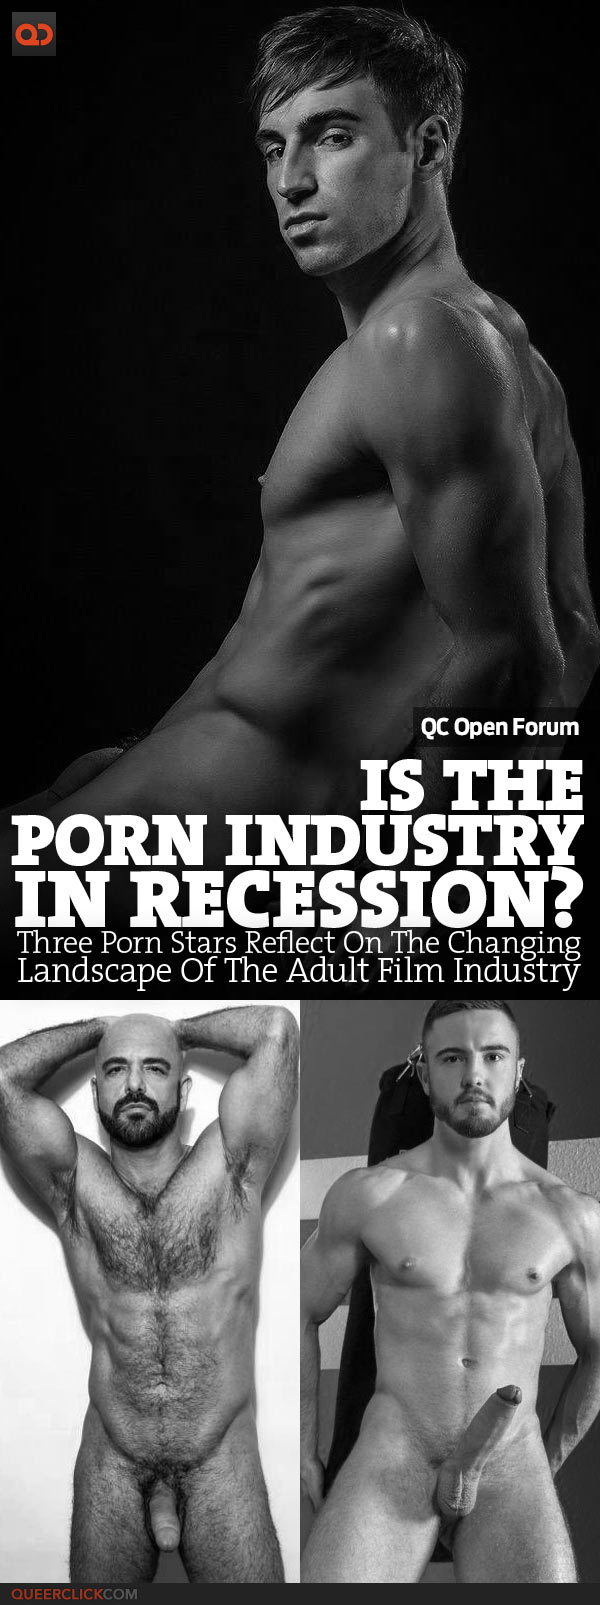 artsandculture article porn industry recession